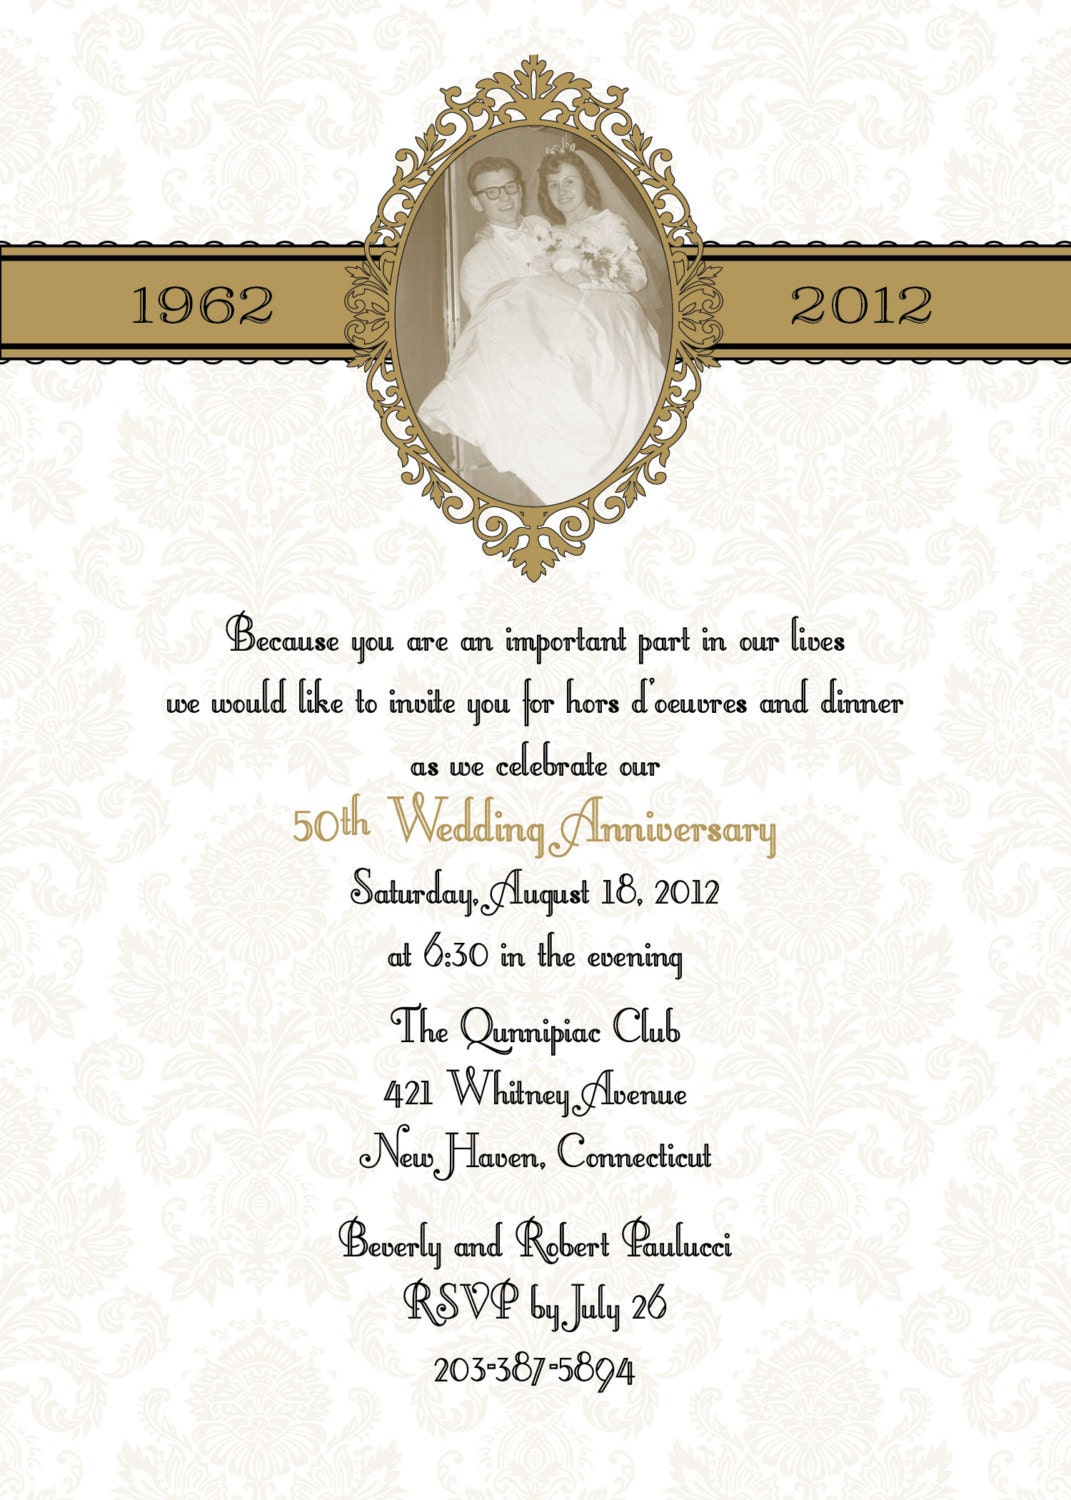 100 damask 50th anniversary wedding invitations especially for - Wedding anniversary invitations ...